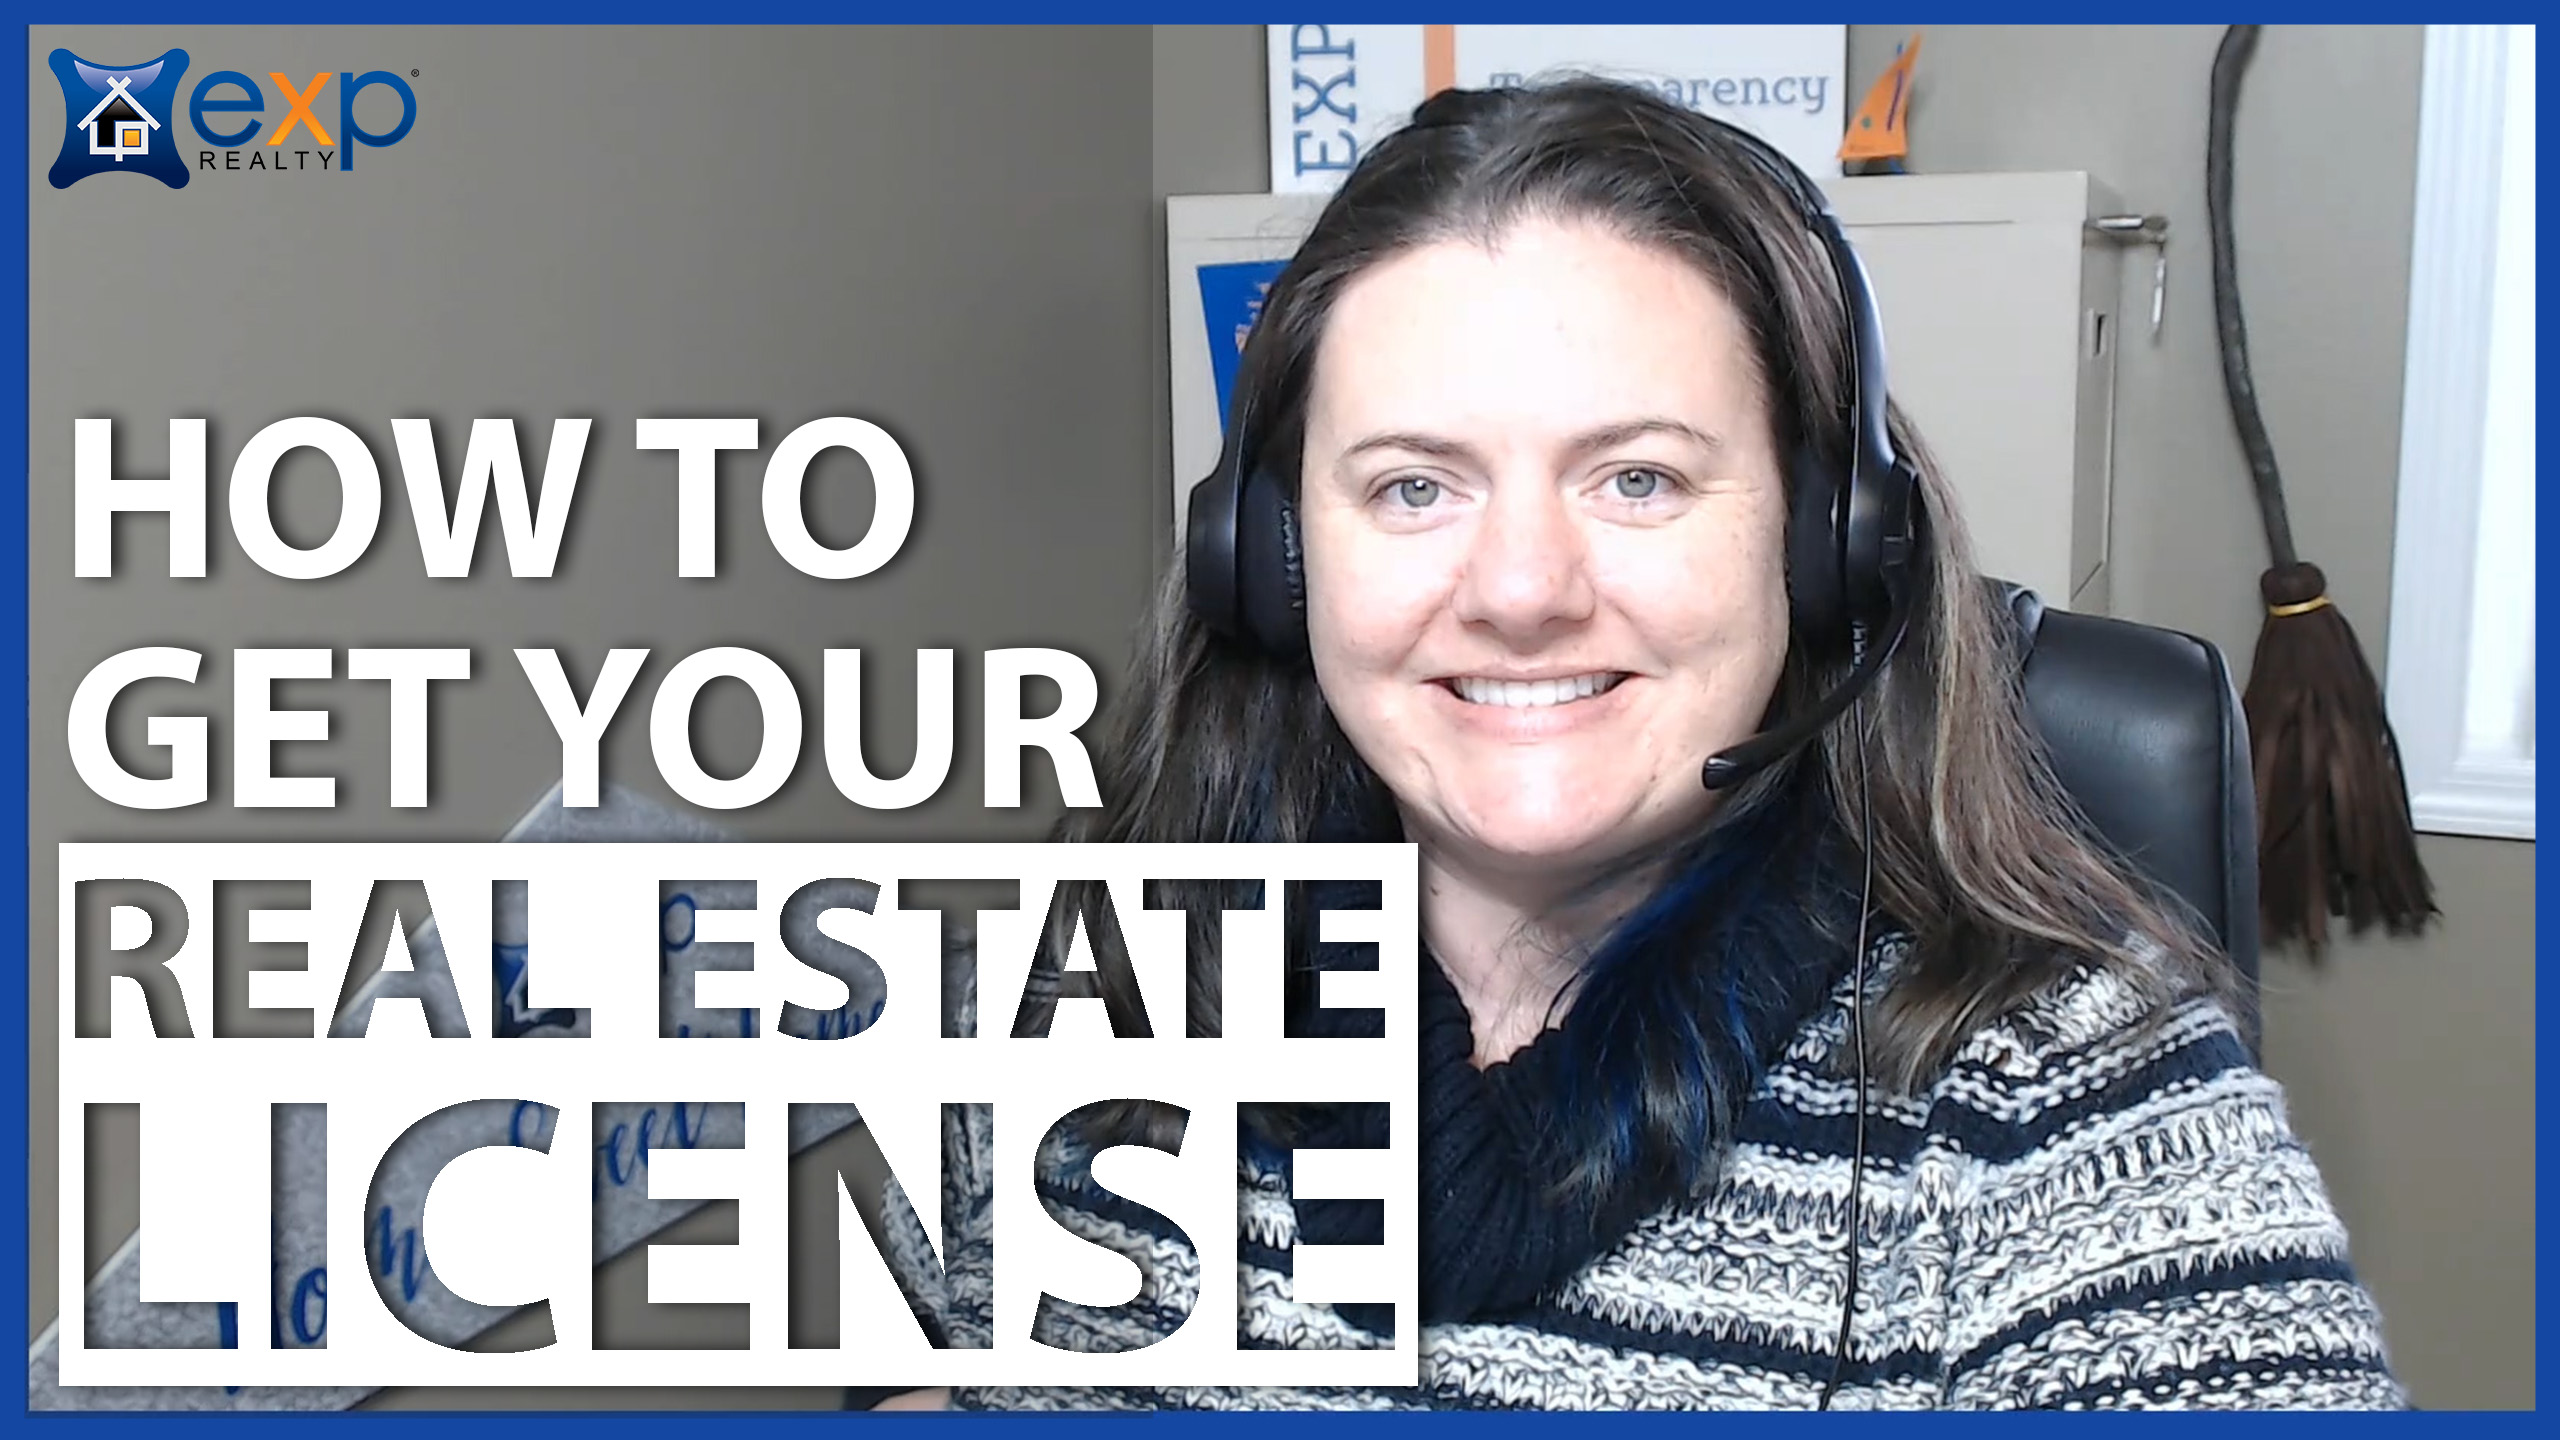 How to Get Your Real Estate License